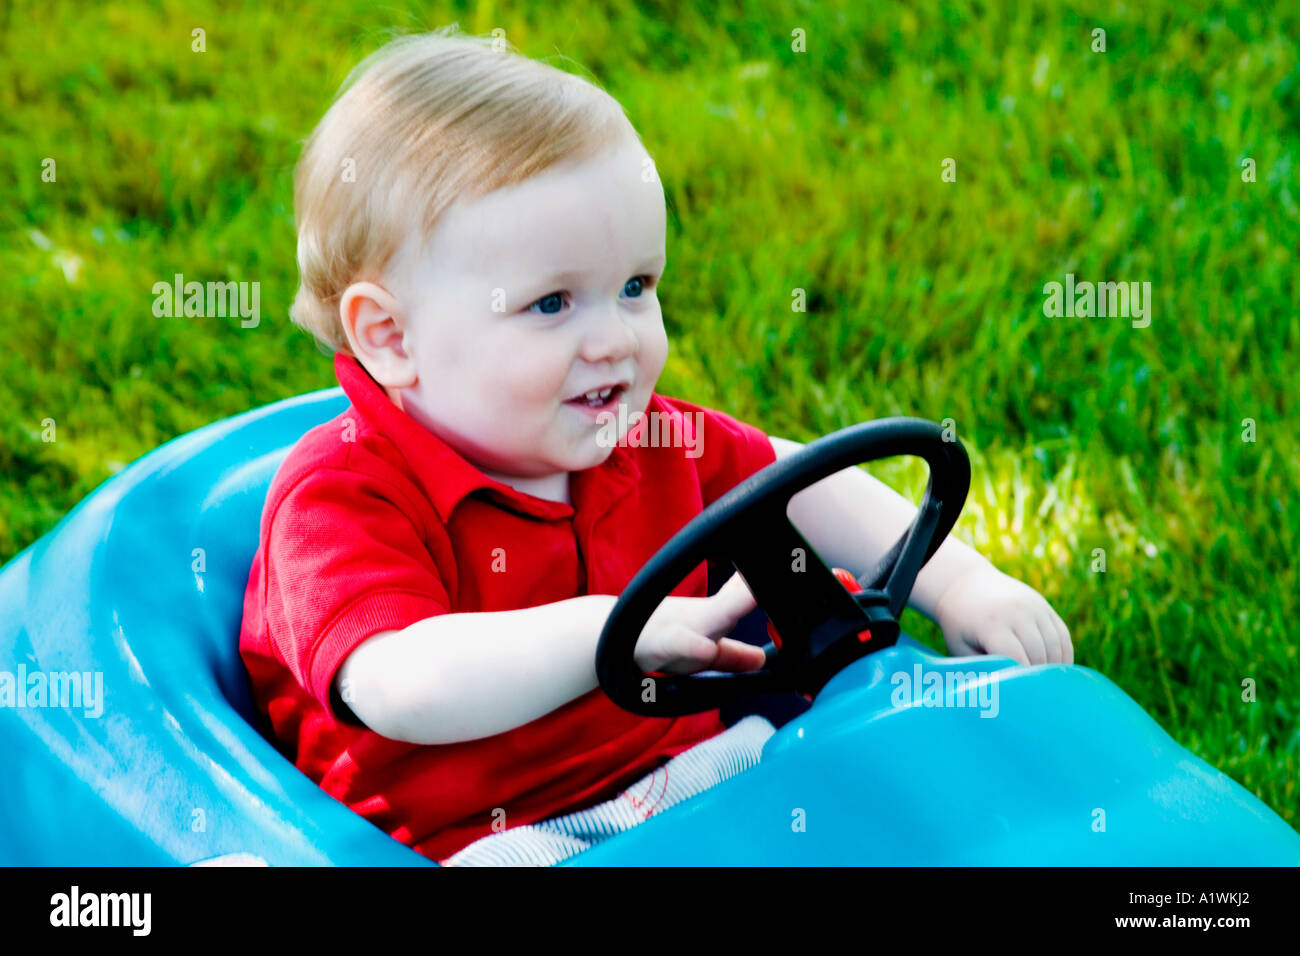 Toy Cars For 1 Year Old Boy : One year old boy riding in a toy car stock photo royalty